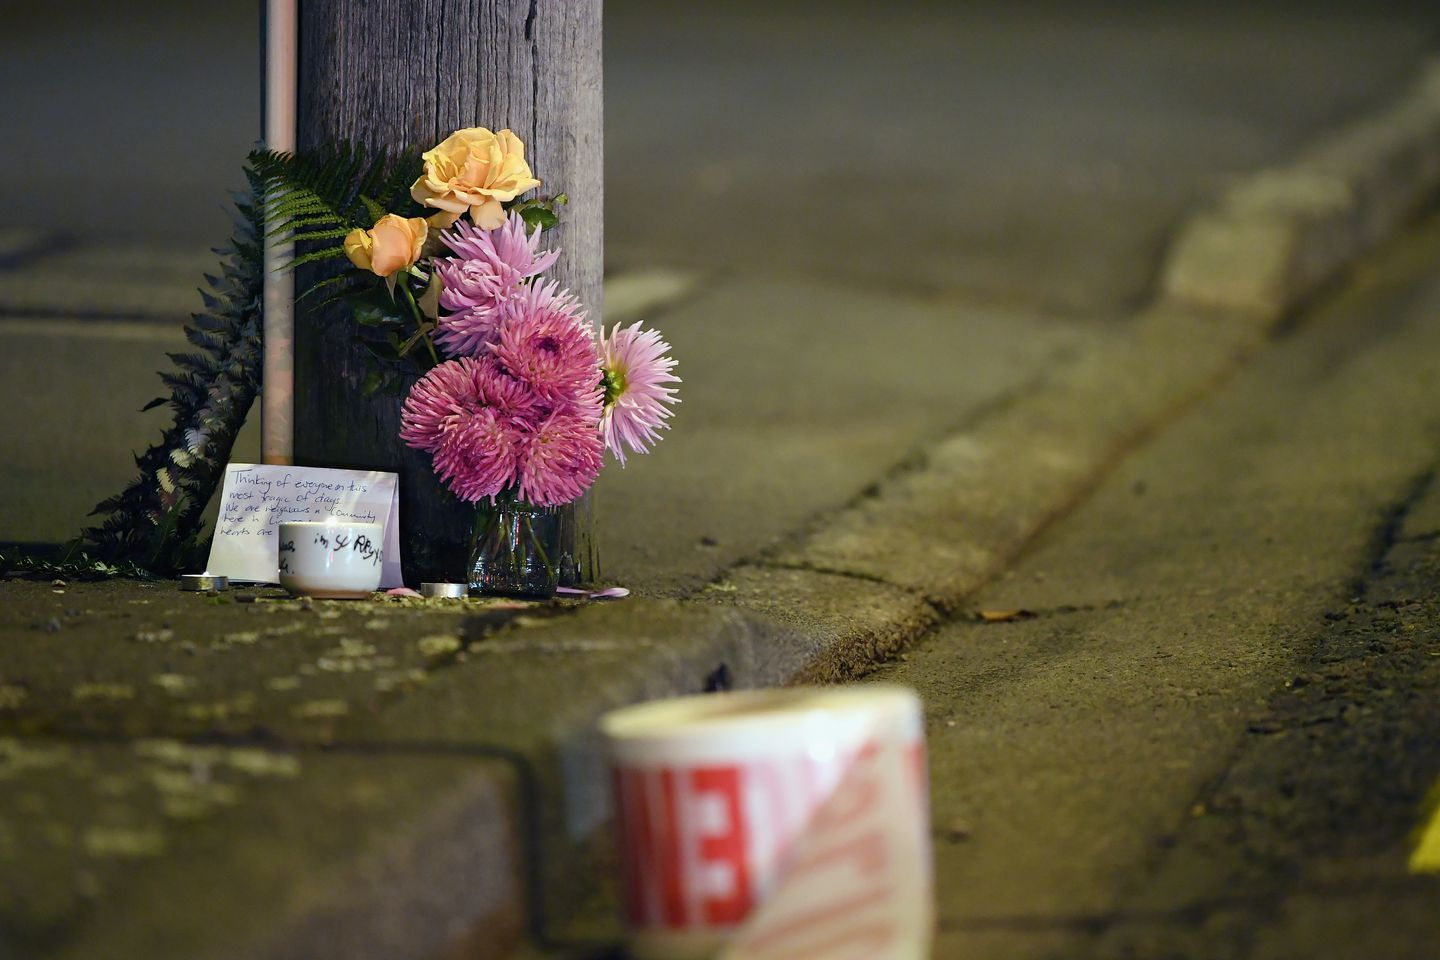 A floral tribute on Linwood Avenue near the Linwood Masjid mosque on March 15 in Christchurch, New Zealand.